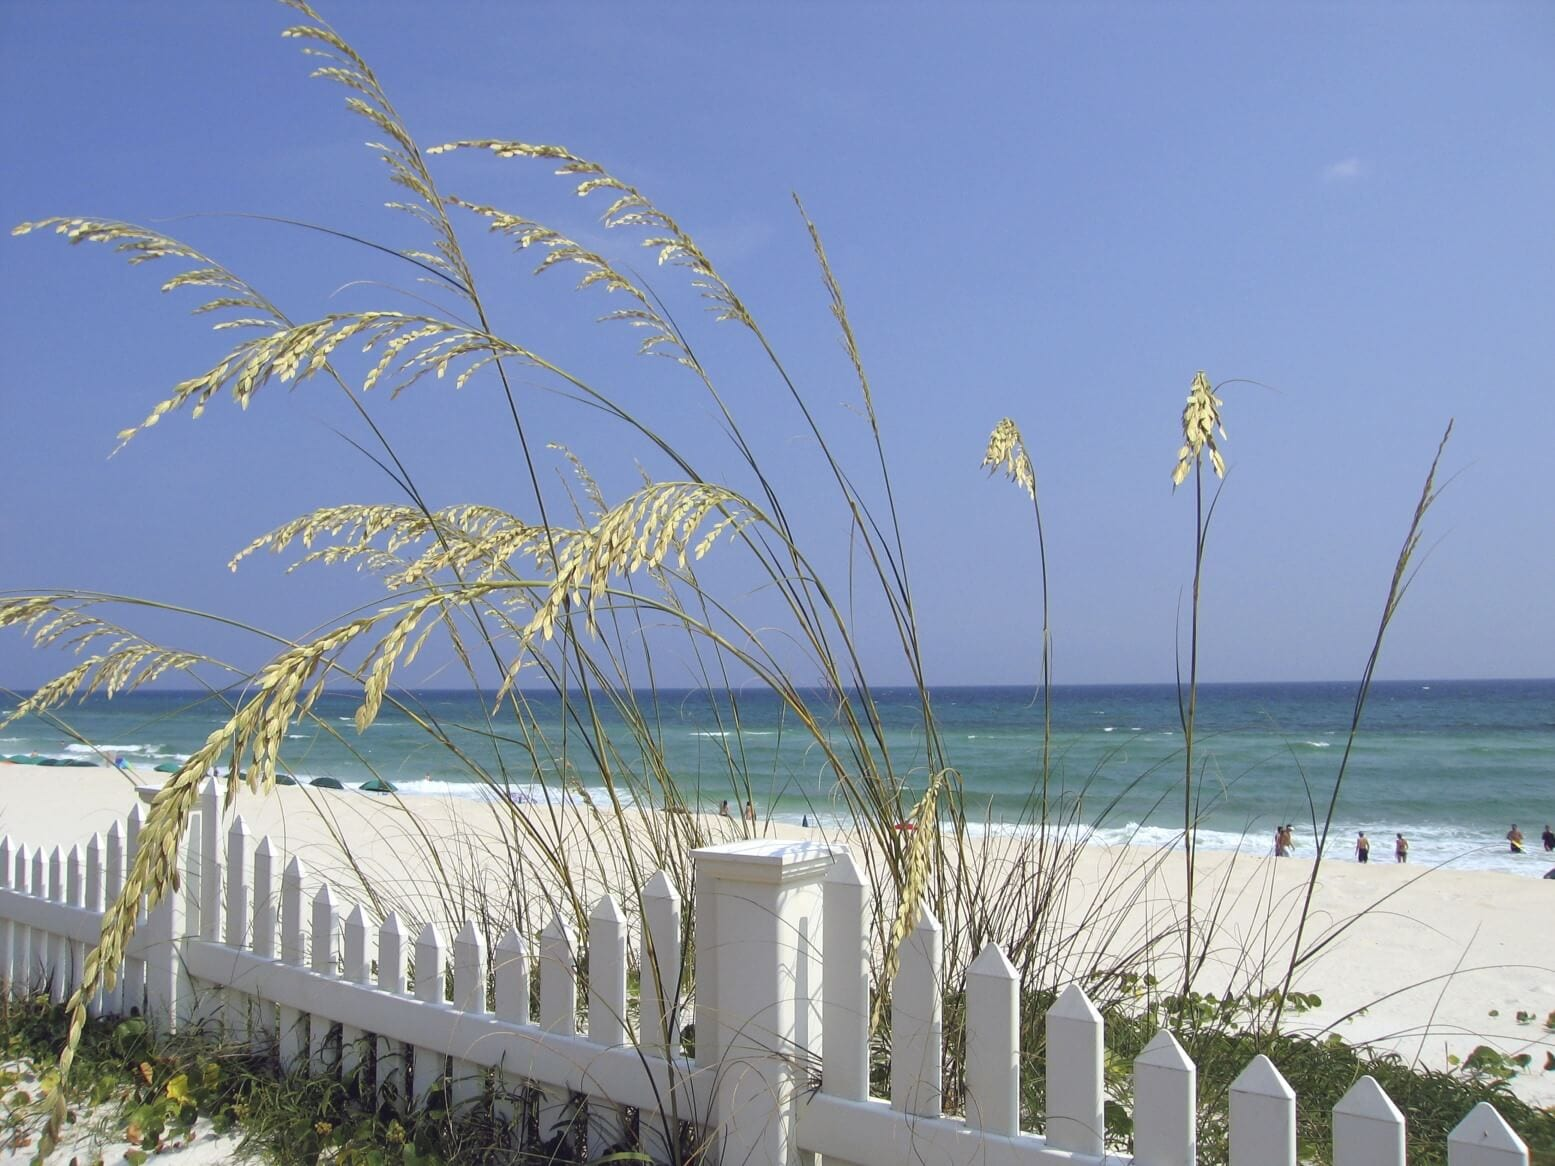 Sanibel and Fort Myers Beaches are Nearby